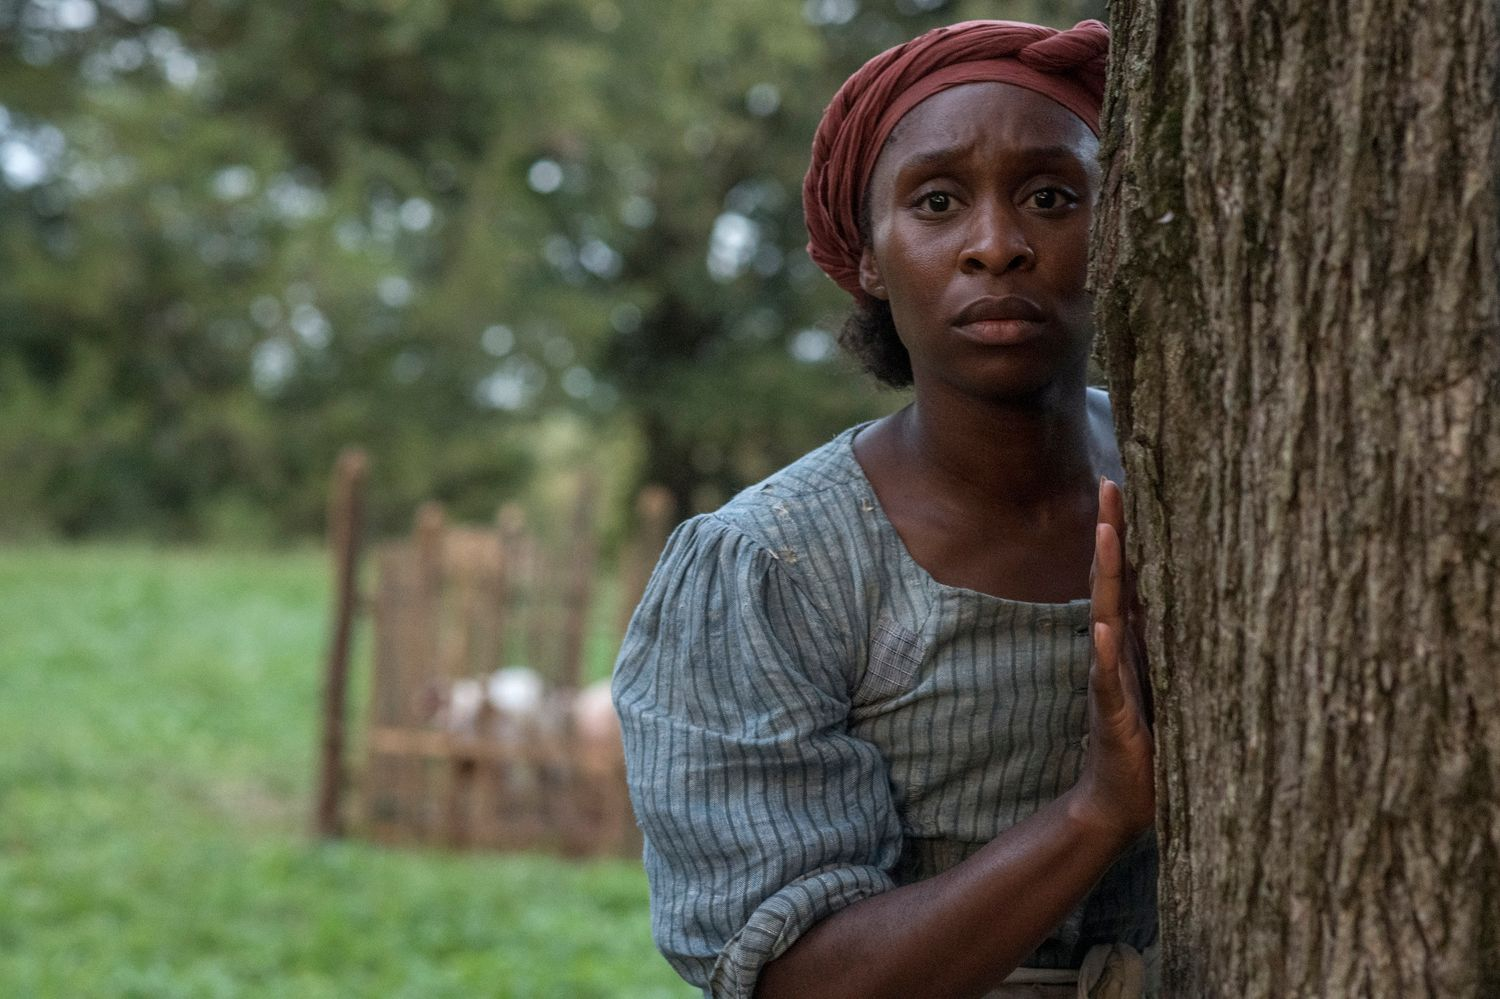 First Look at Cynthia Erivo as Harriet Tubman in Focus Features Biopic 'Harriet'